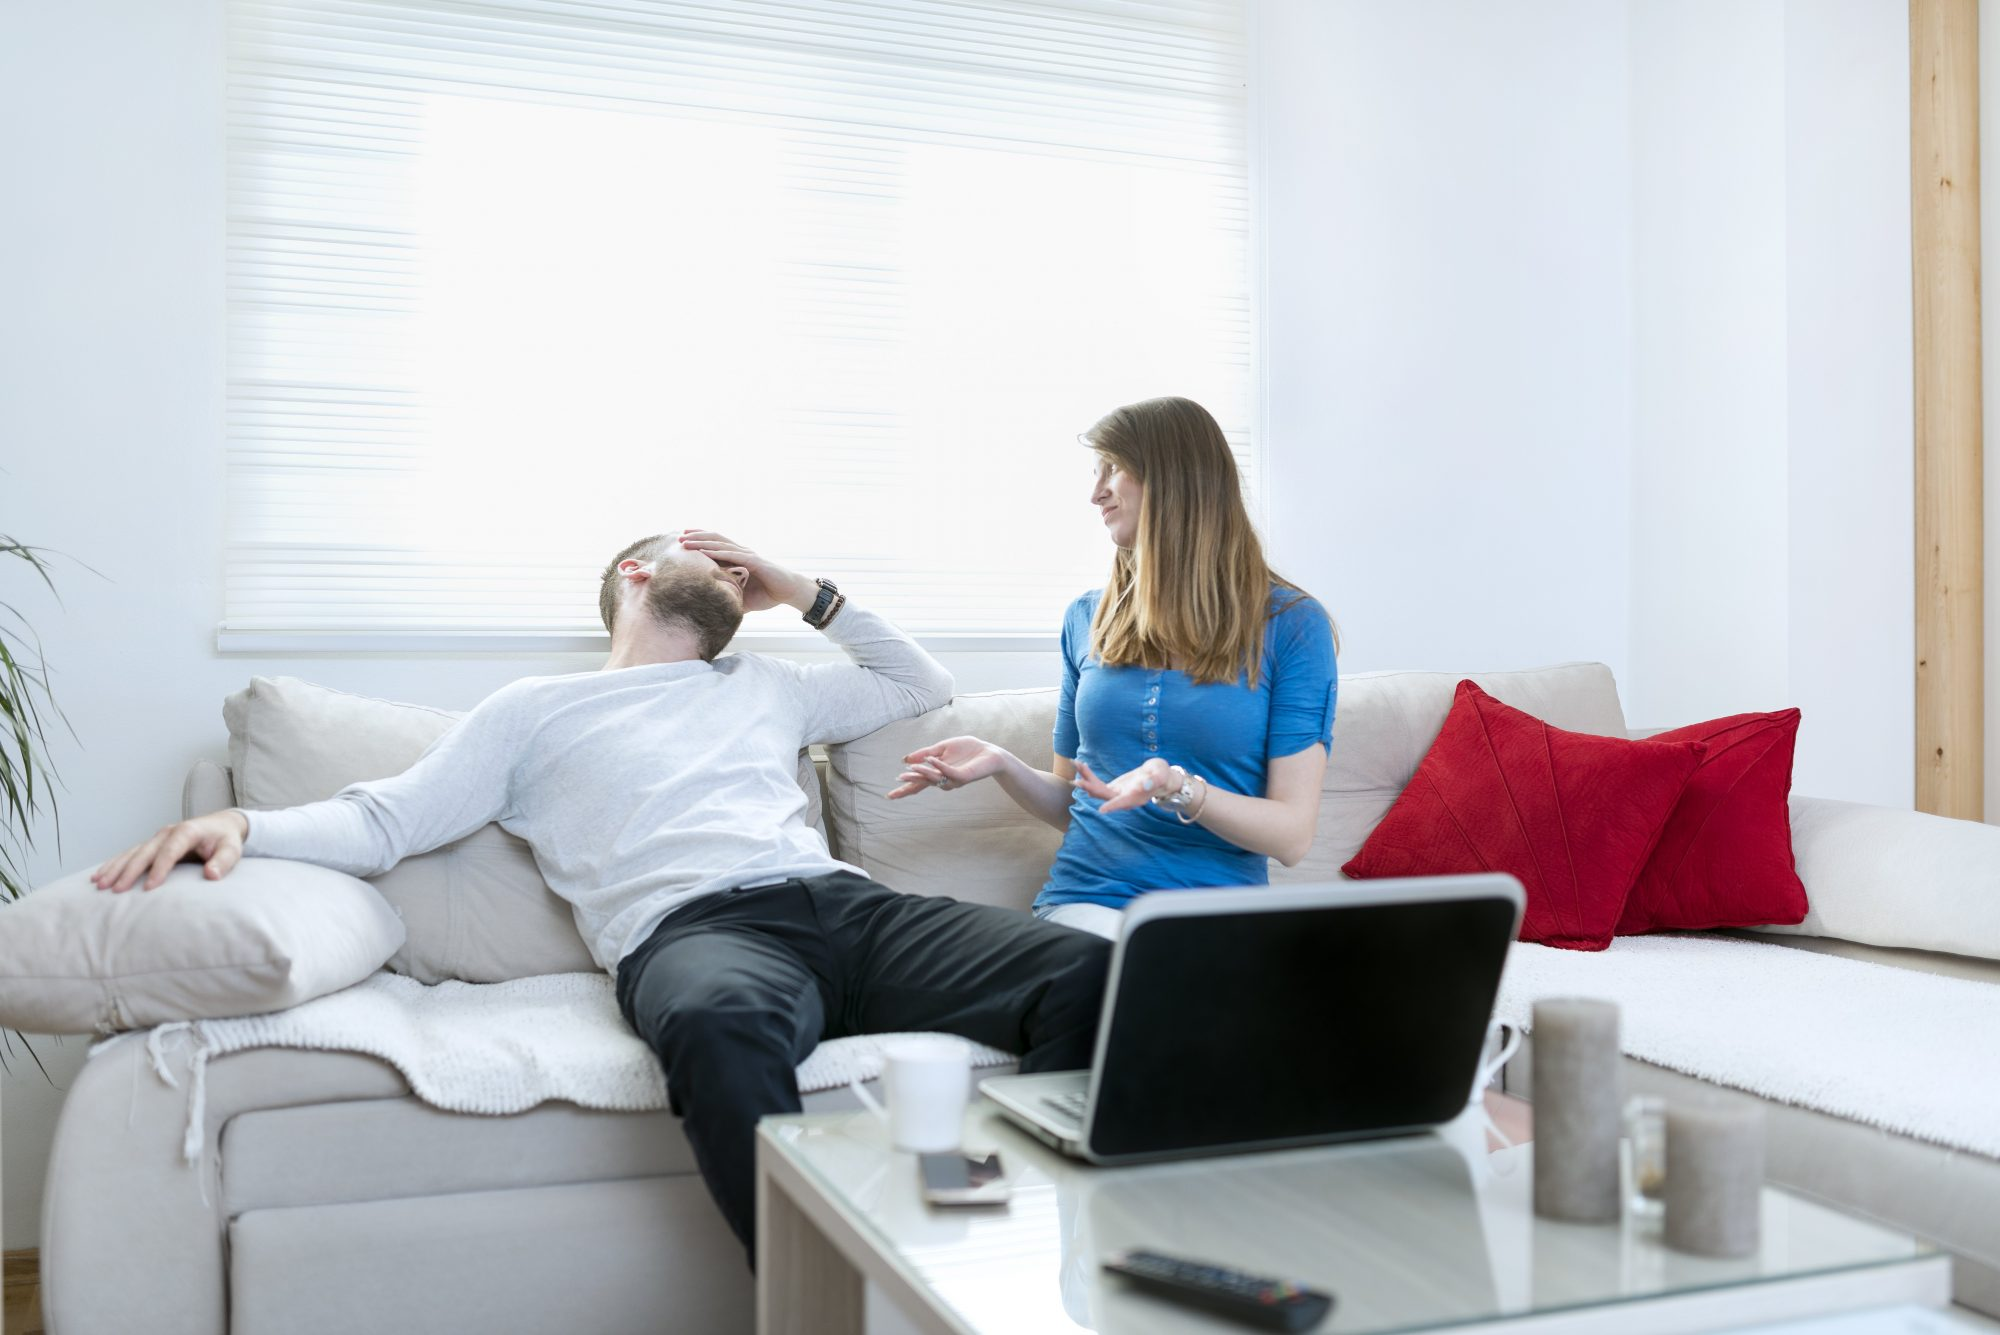 Man Suffering from Headache while Woman Quarreling